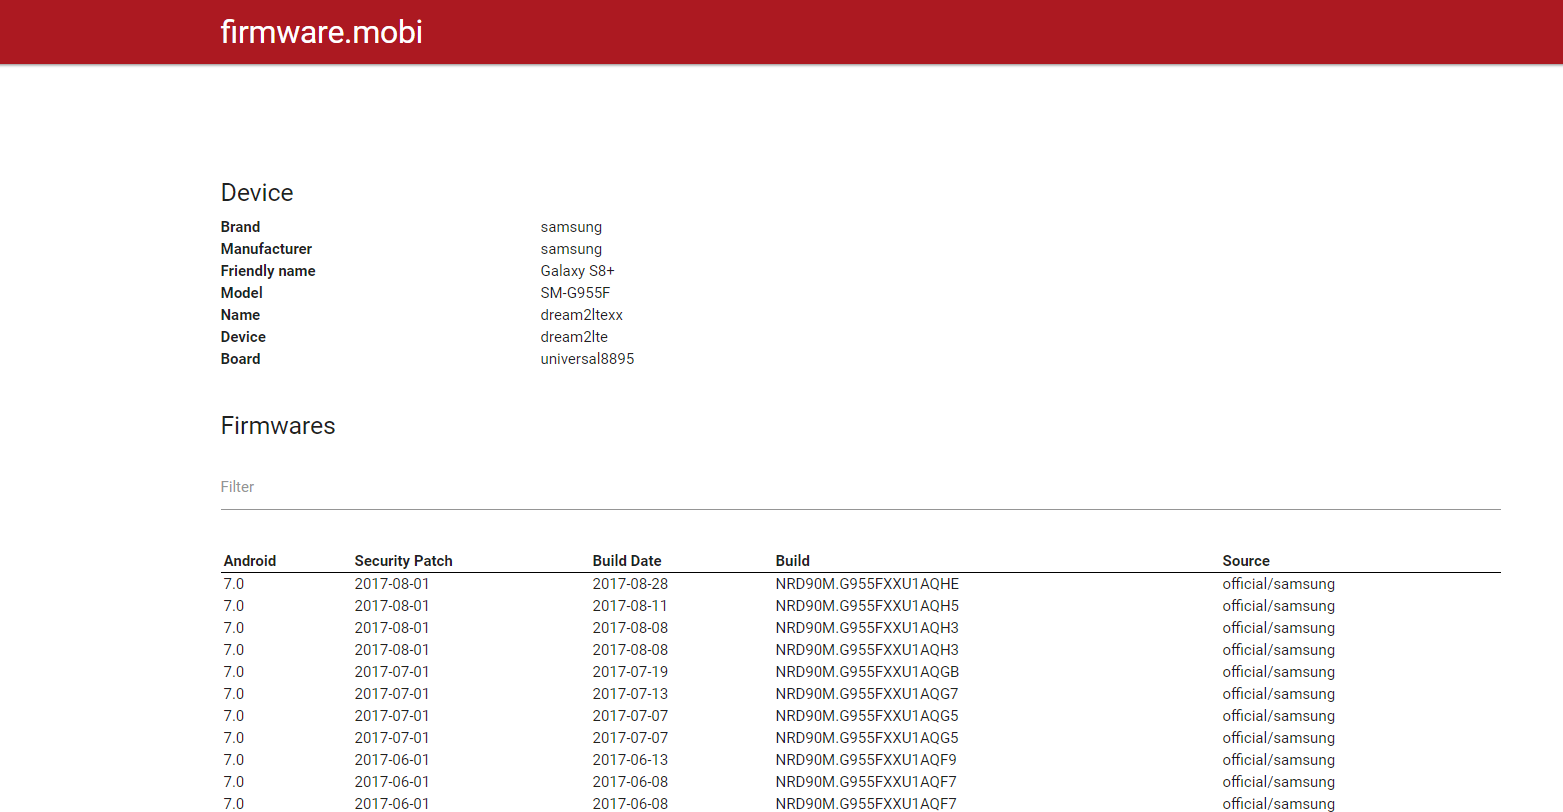 Firmware mobi is a new root tool for Samsung devices by